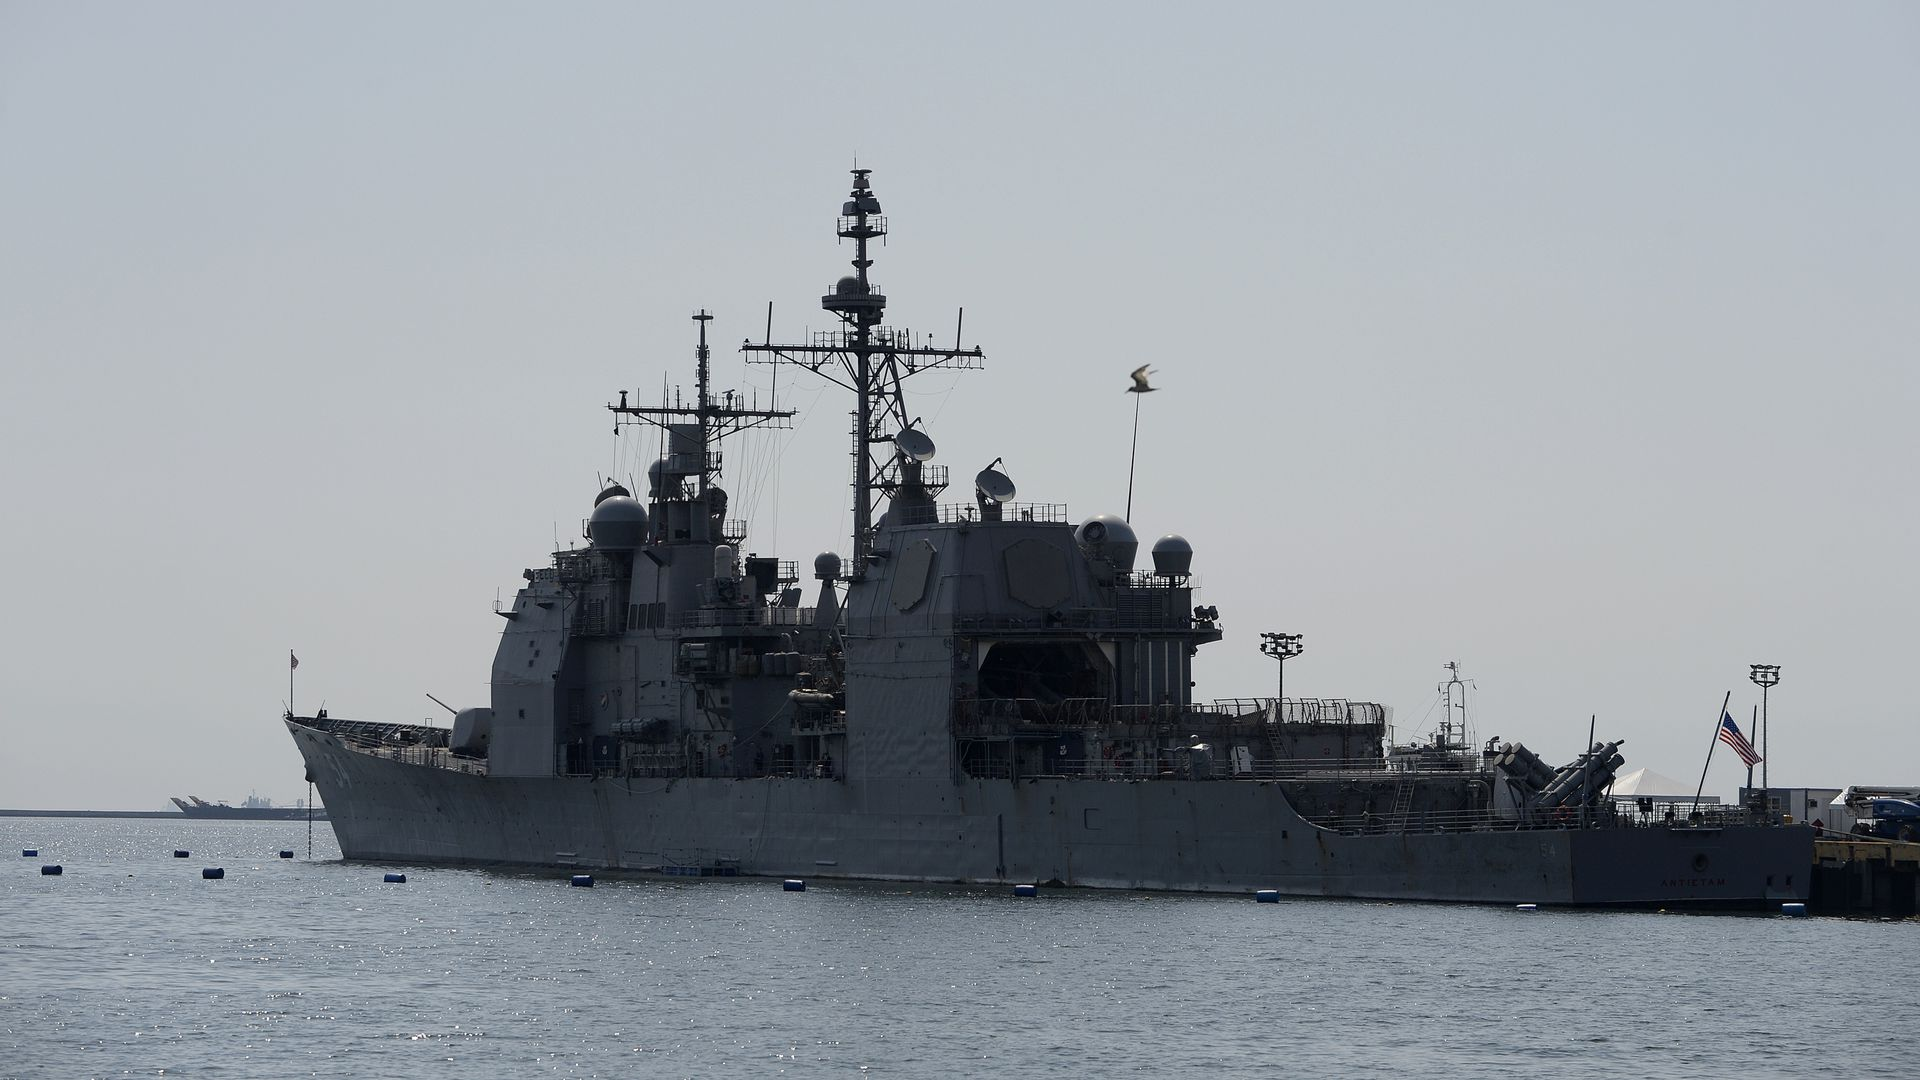 The US Navy's guided missile cruiser USS Antietam (CG-54) is seen docked at a port in Manila on March 14, 2016.